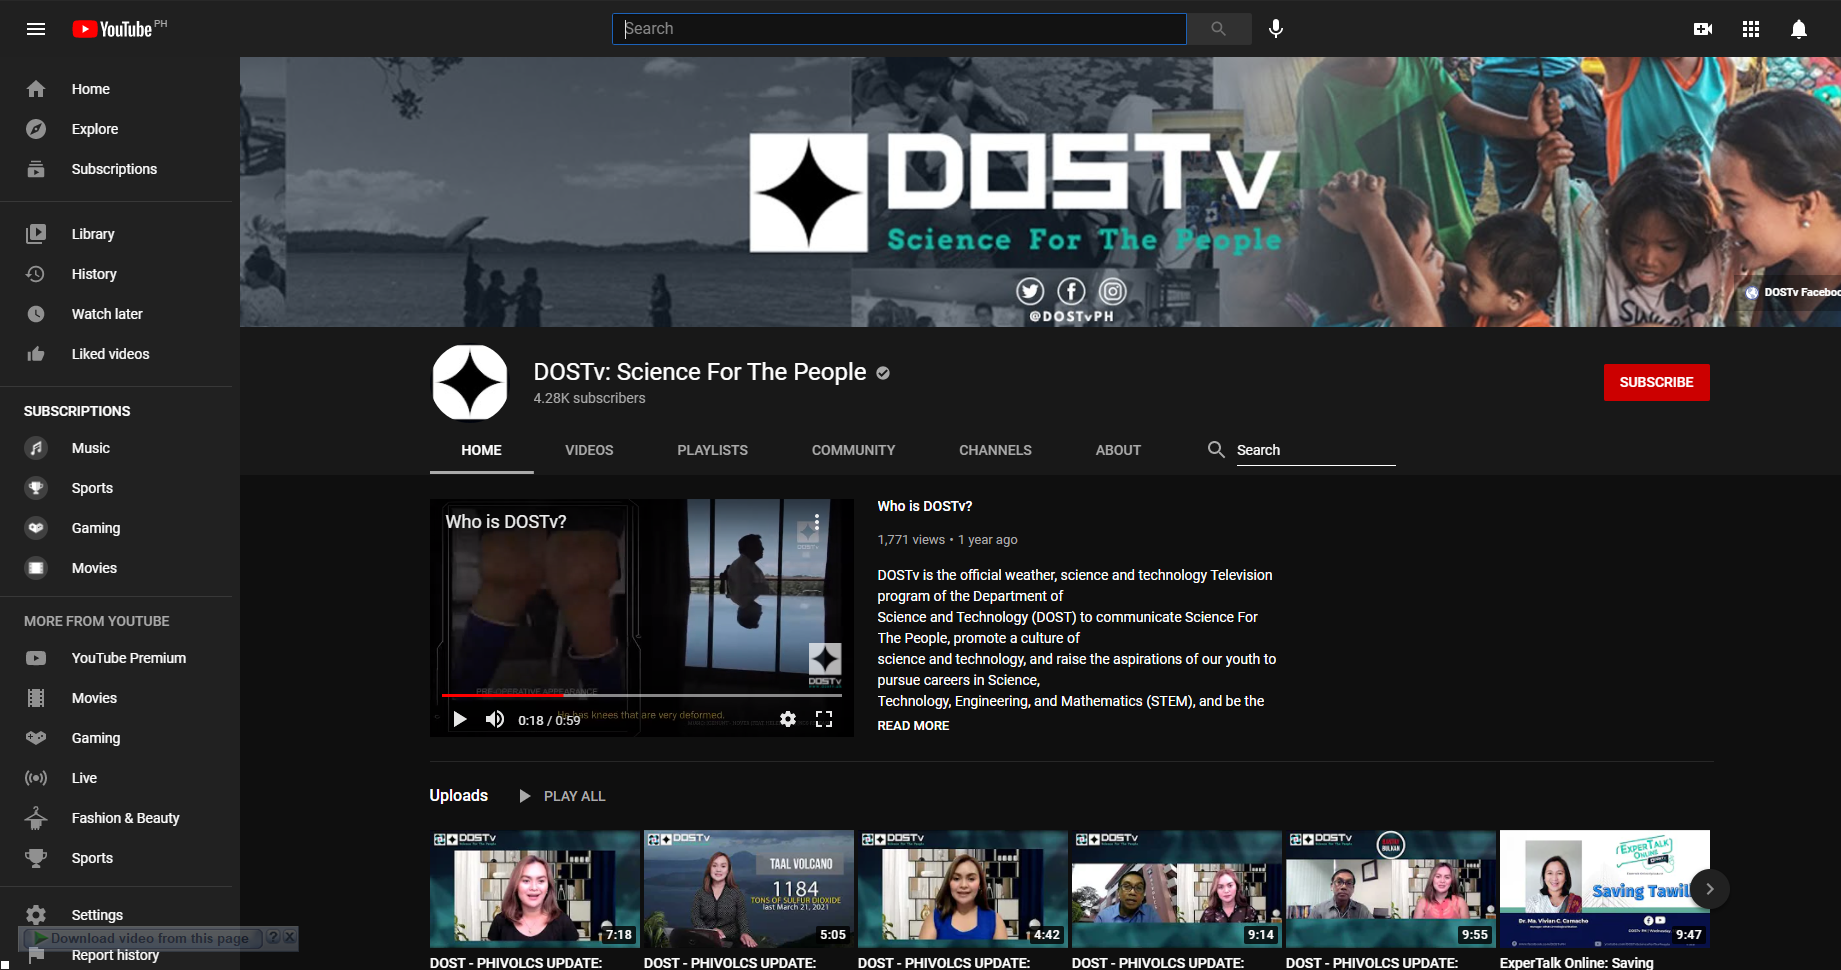 Follow us on Youtube! DOSTv: Science For The People image